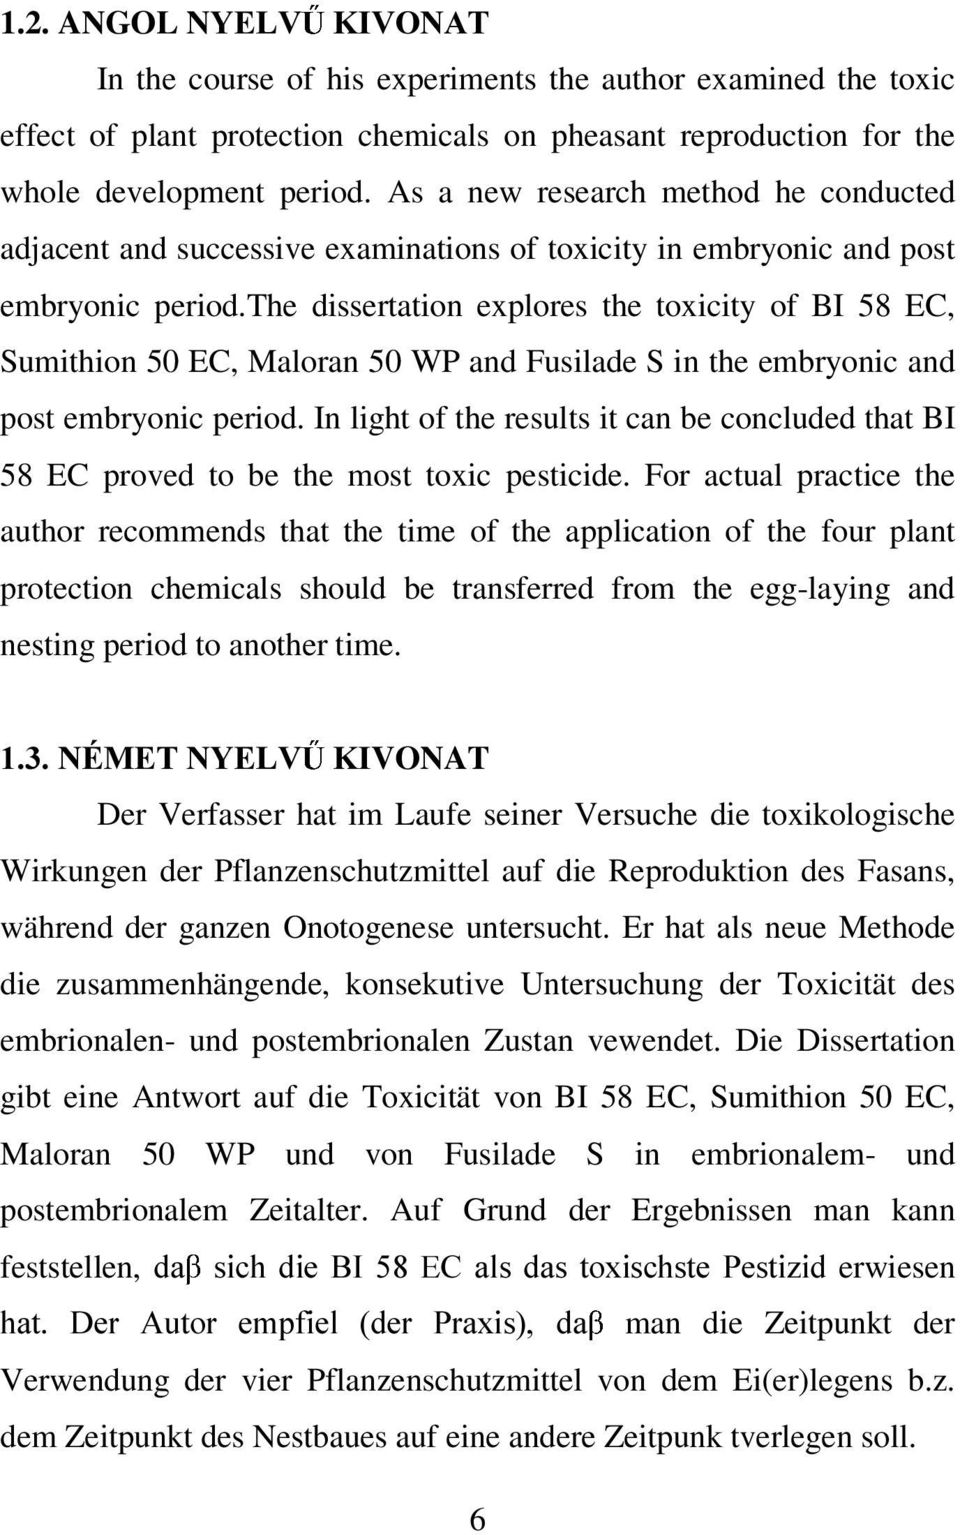 the dissertation explores the toxicity of BI 58 EC, Sumithion 50 EC, Maloran 50 WP and Fusilade S in the embryonic and post embryonic period.